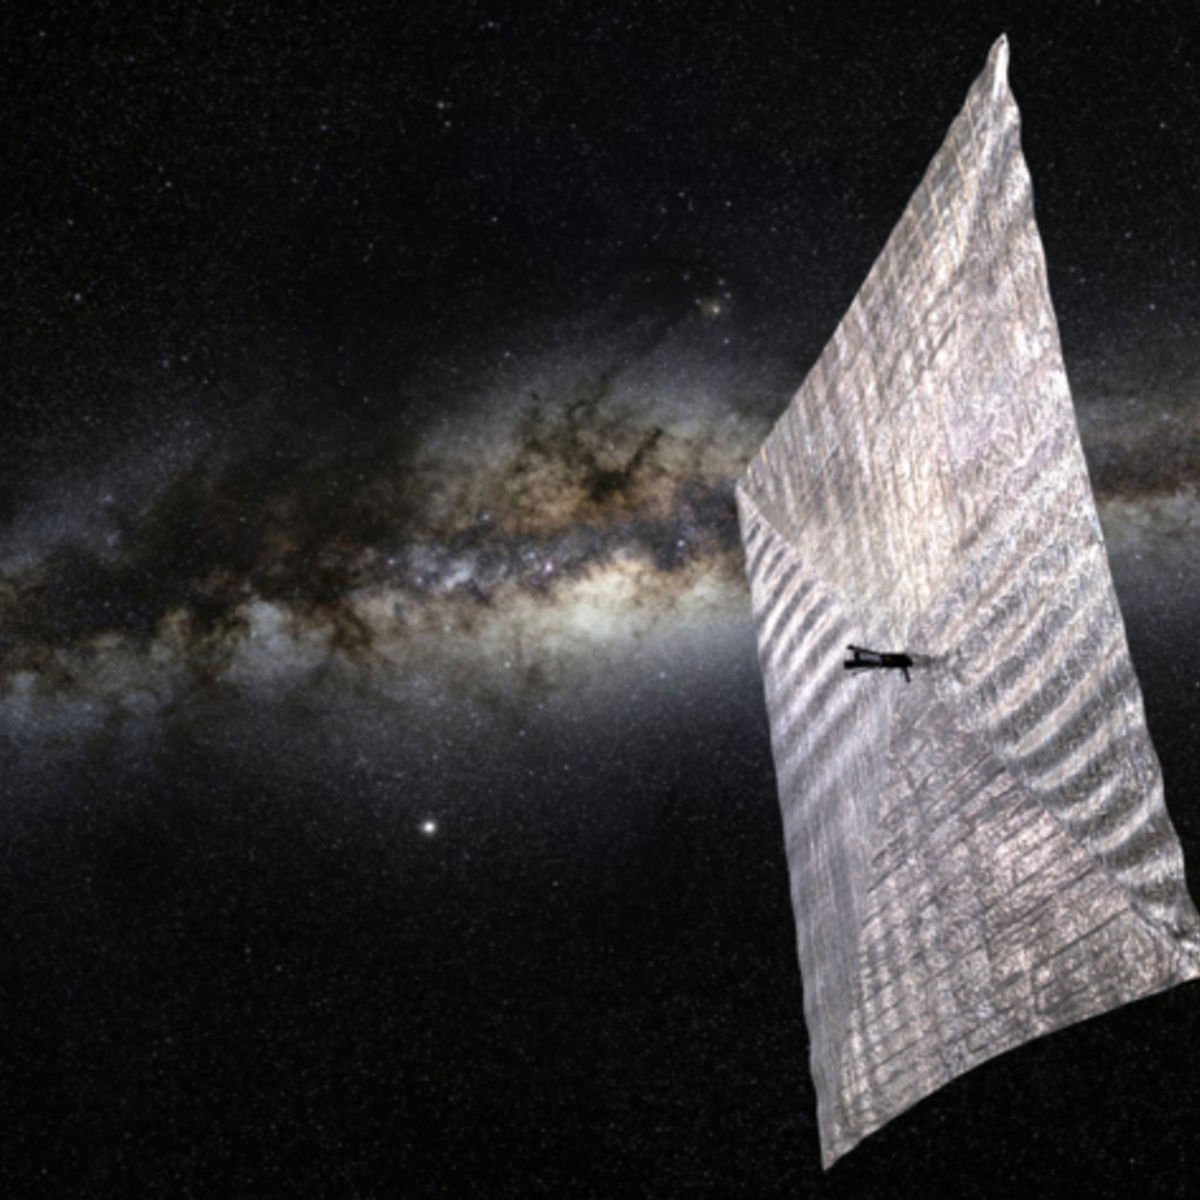 20140709_LightSail1_Space03_f840.jpg